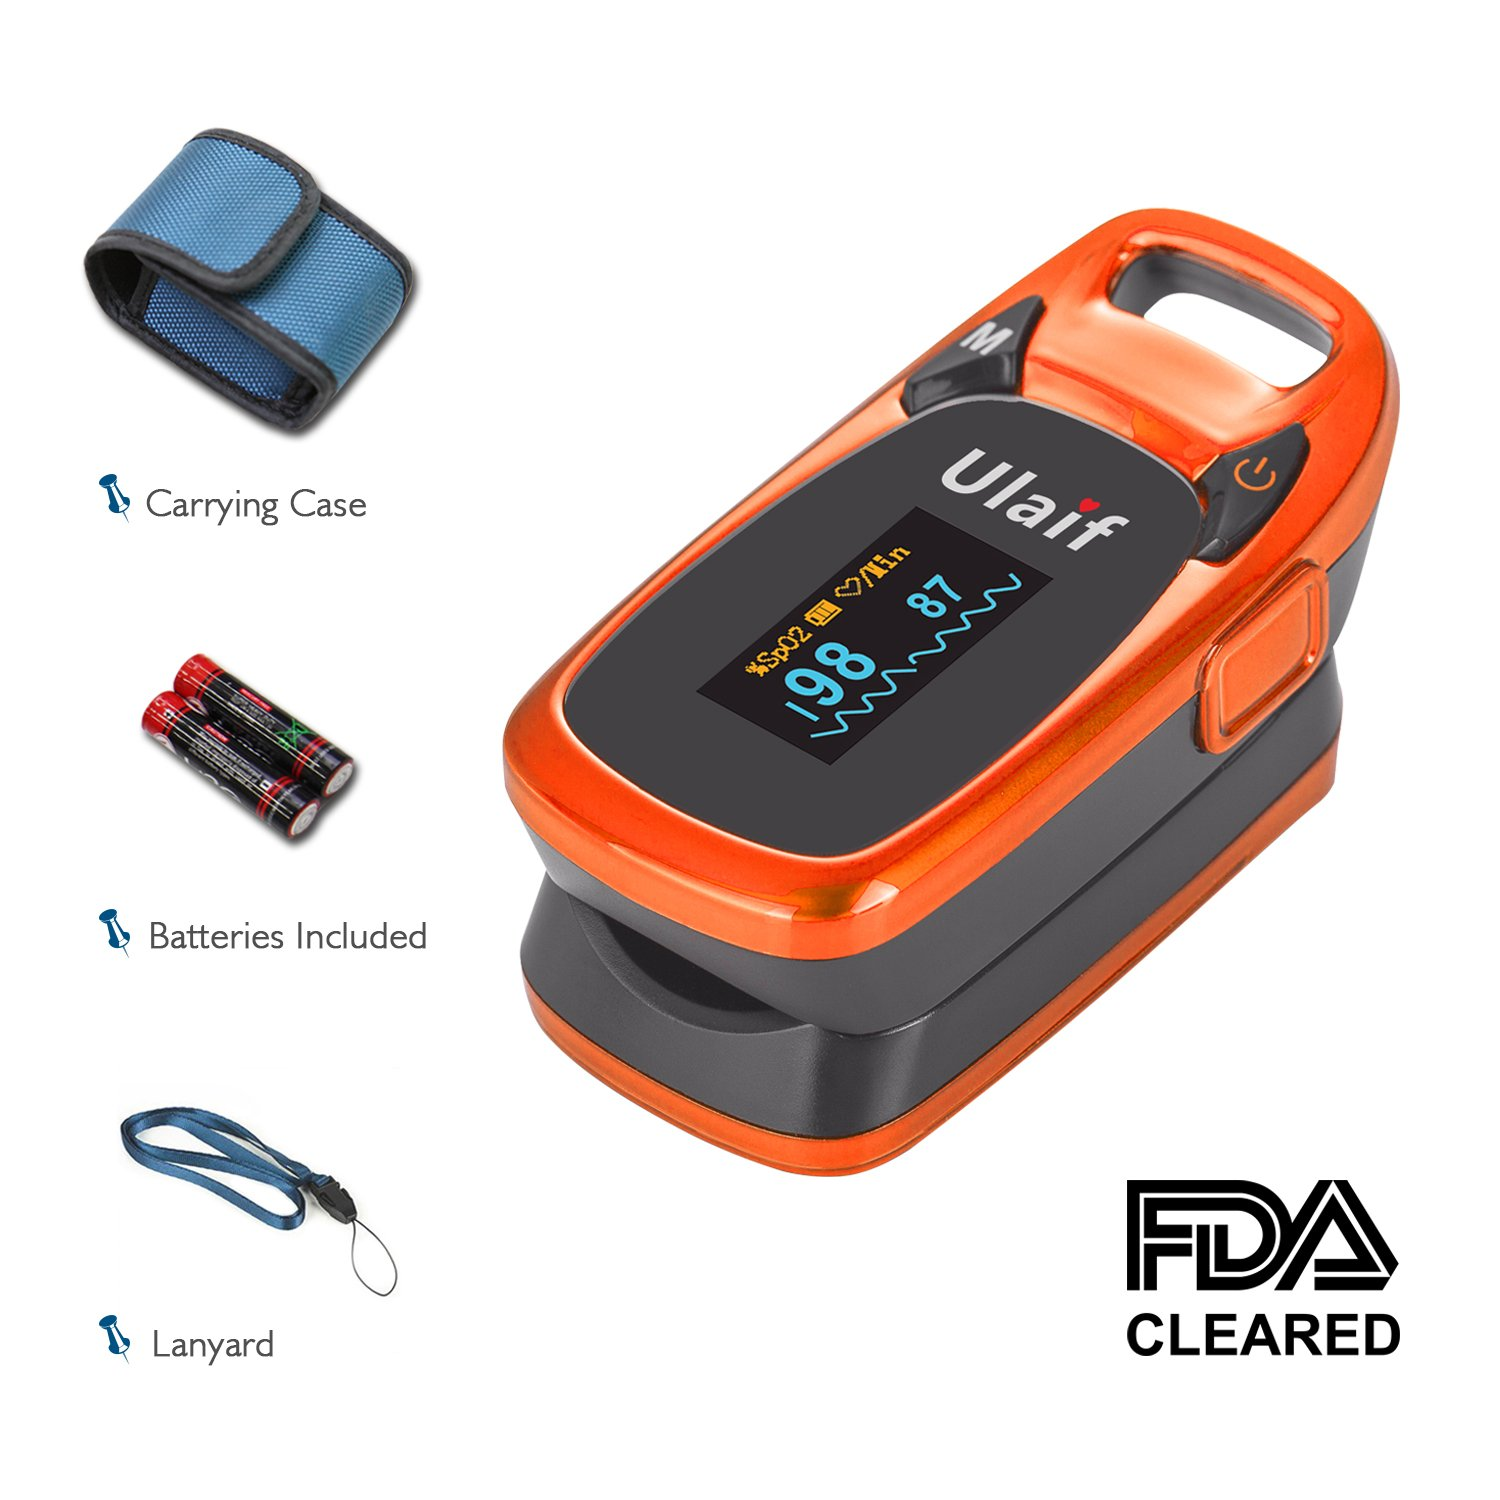 Fingertip Pulse Oximeter OLED Portable Oximetry Blood Oxygen Saturation Monitor SpO2 Finger Pulse Oximeter Readings with Carrying Case Lanyard and Batteries